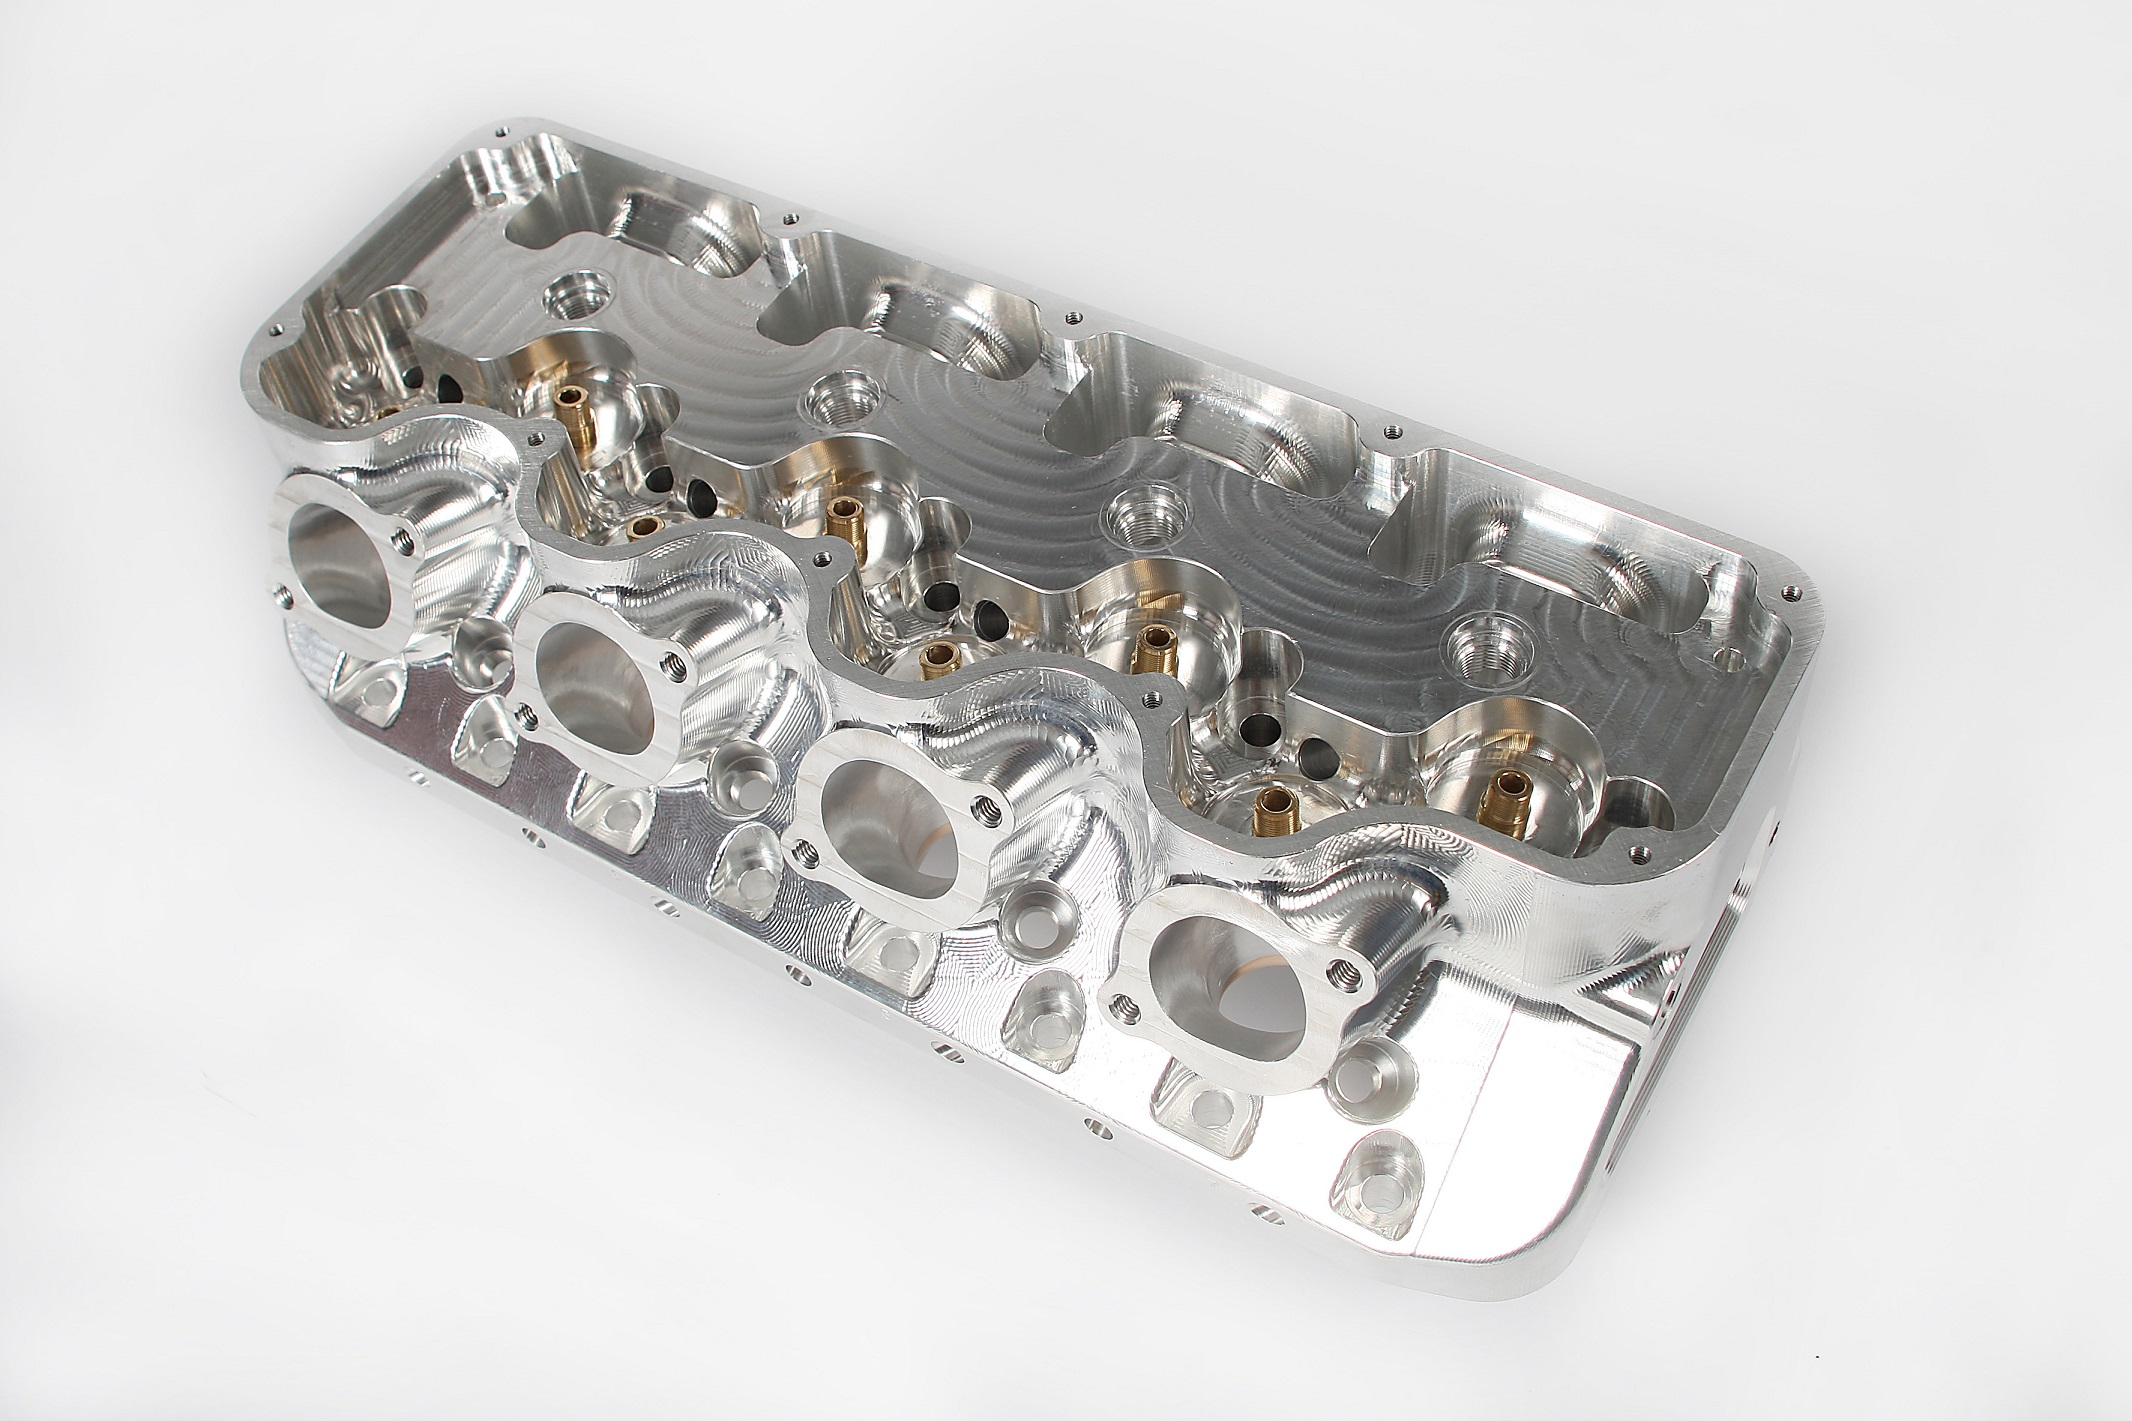 MBE SB Chevy Billet 4 400 | MBE Cylinder Heads & Manifolds